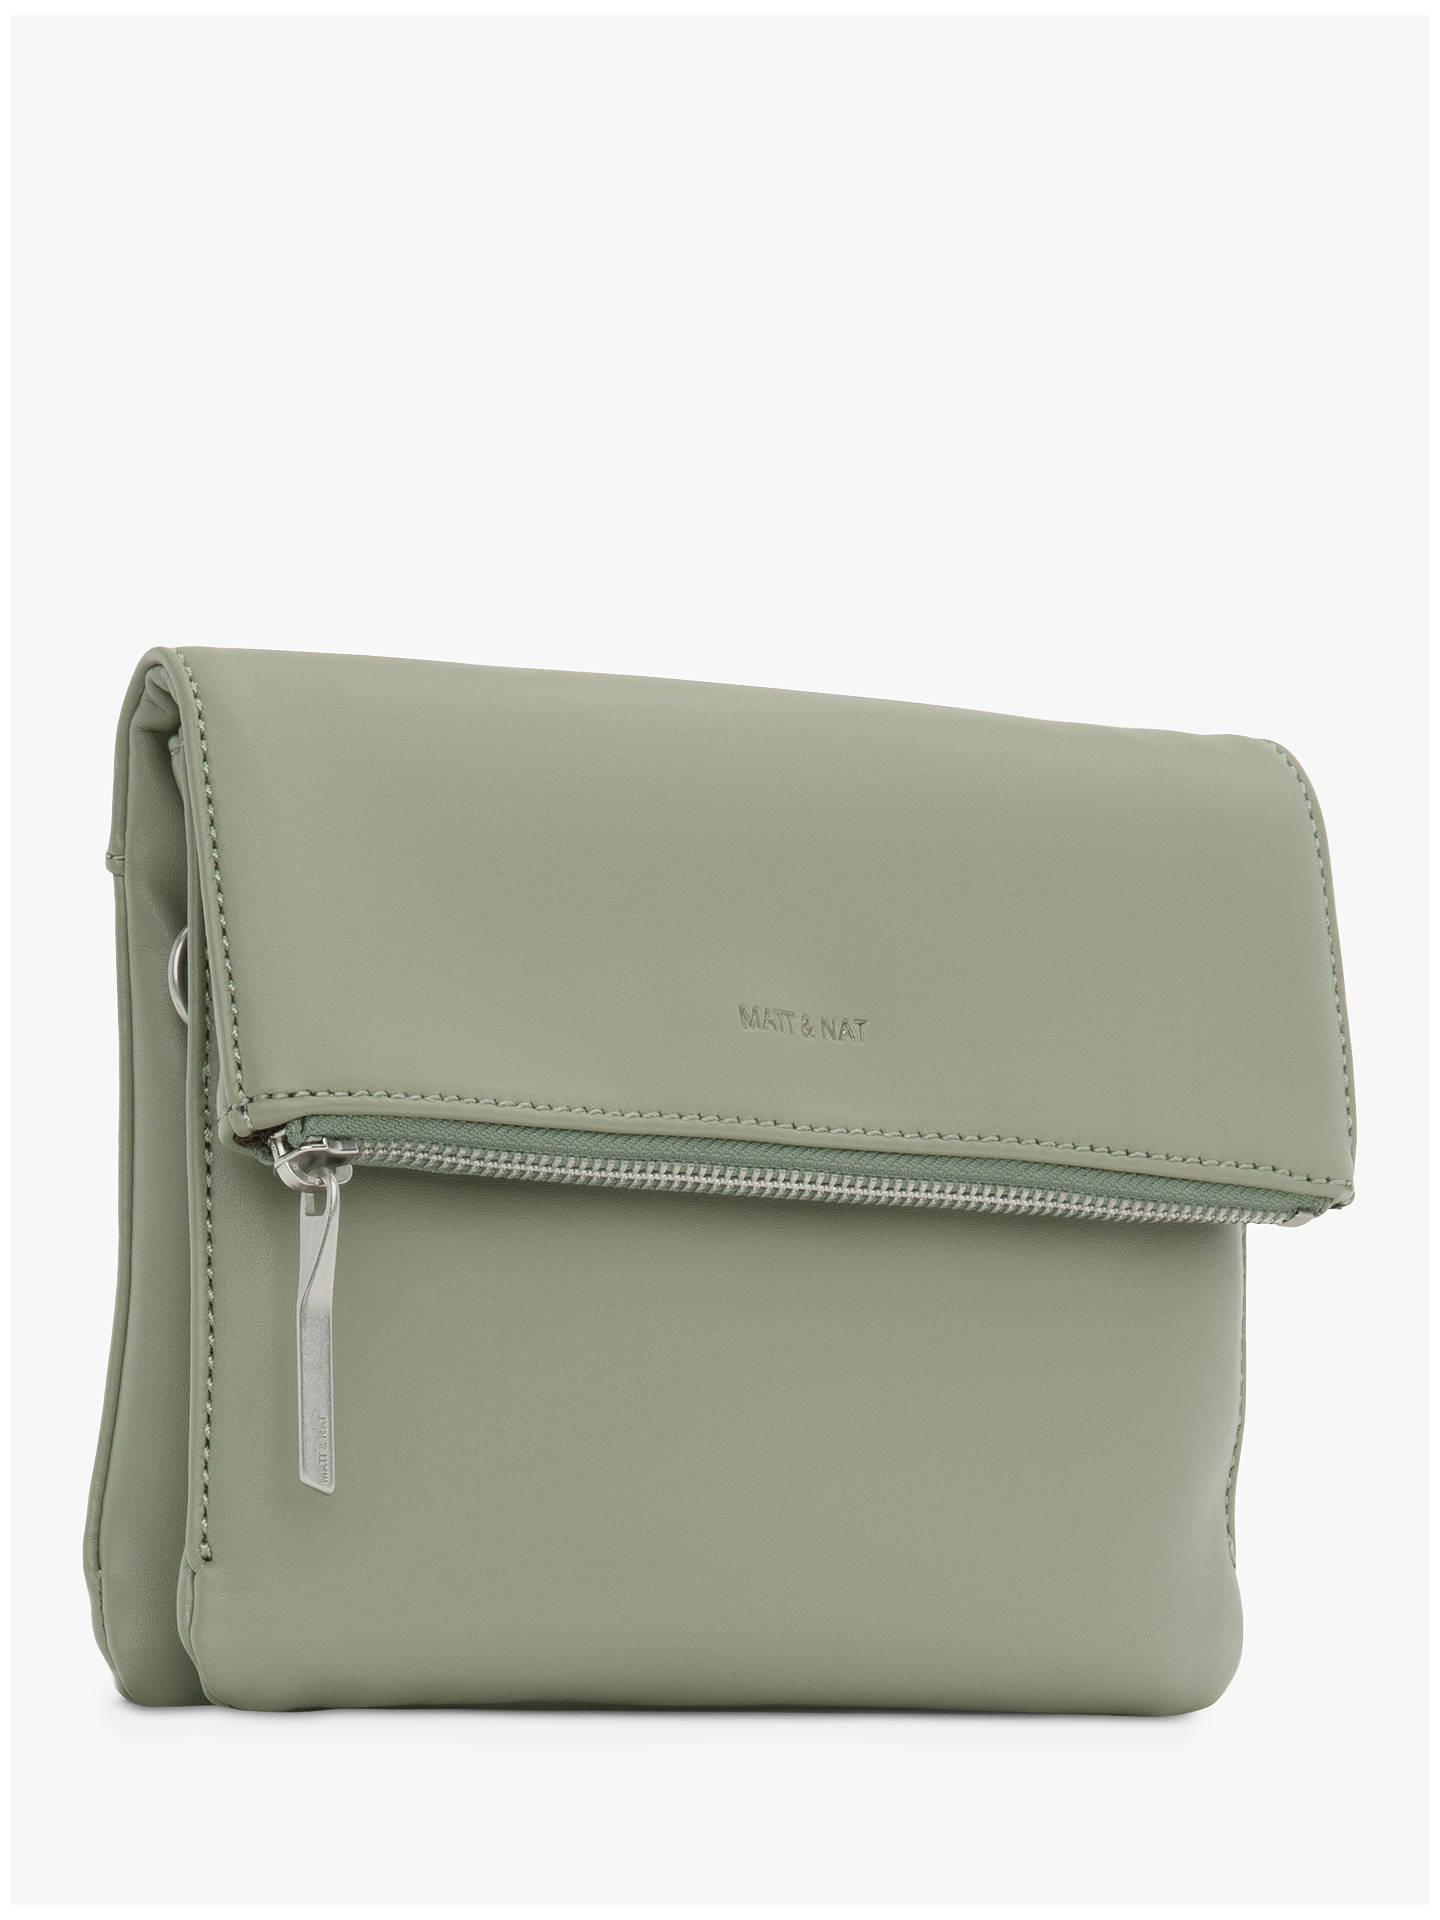 1bd9bca13d7850 ... Buy Matt & Nat Loom Collection Hiley Vegan Cross Body Bag, Pine Online  at johnlewis